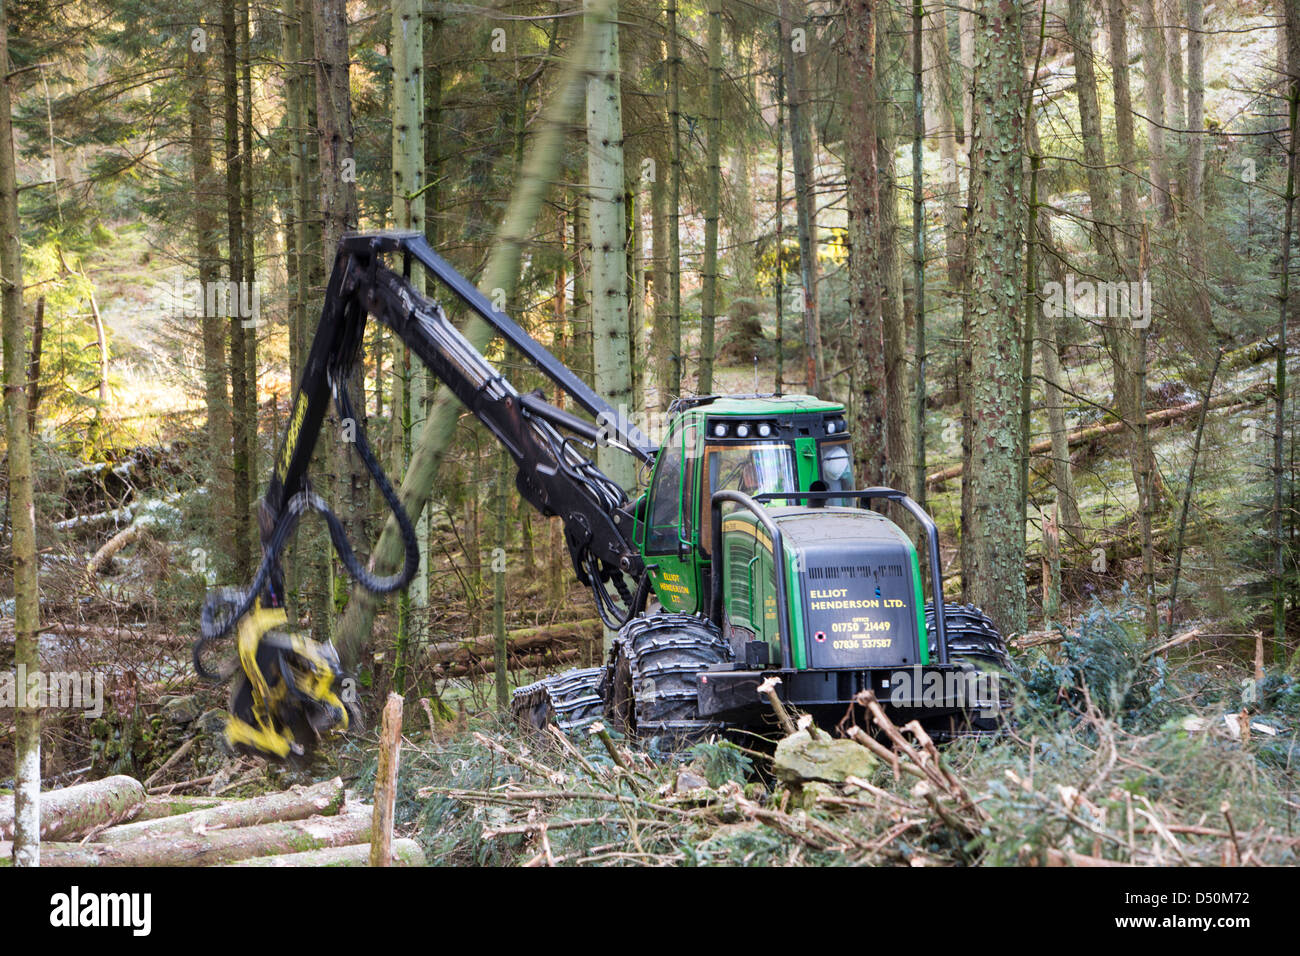 A forwarder harvesting timber in Grizedale Forest, Lake District, UK. Stock Photo